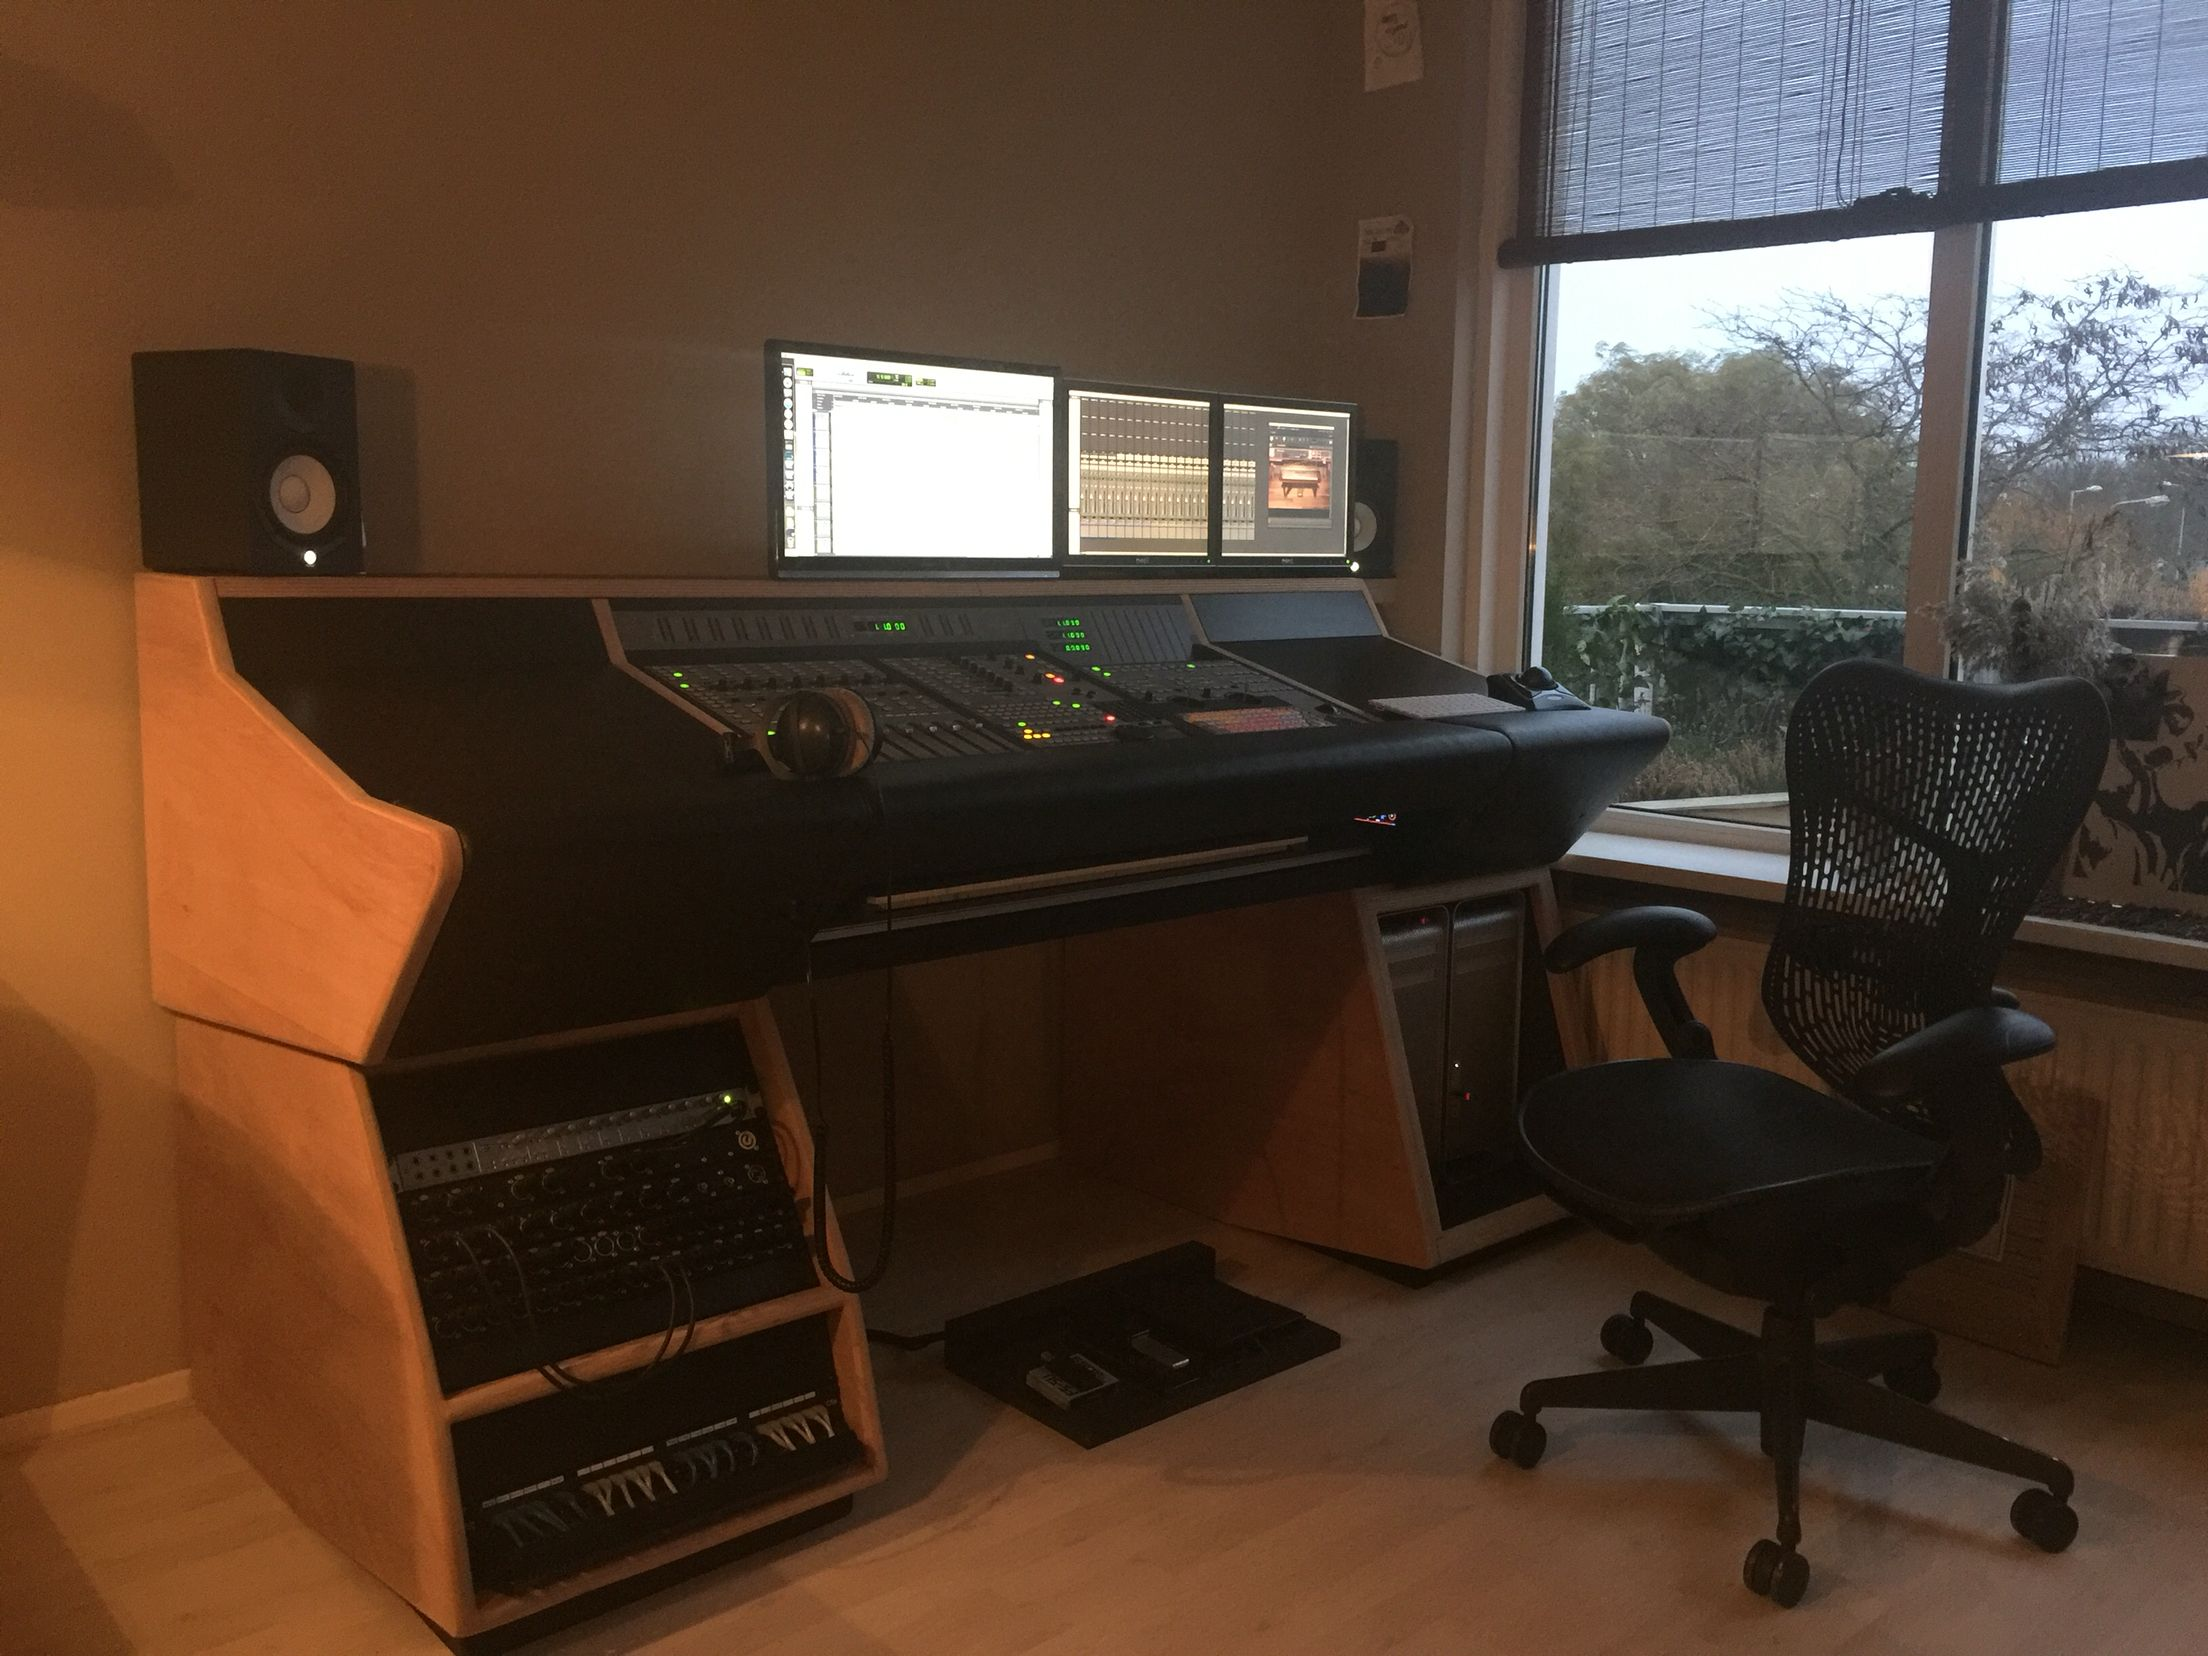 My Studio Desk Designed And Build By Myself For Procontrol